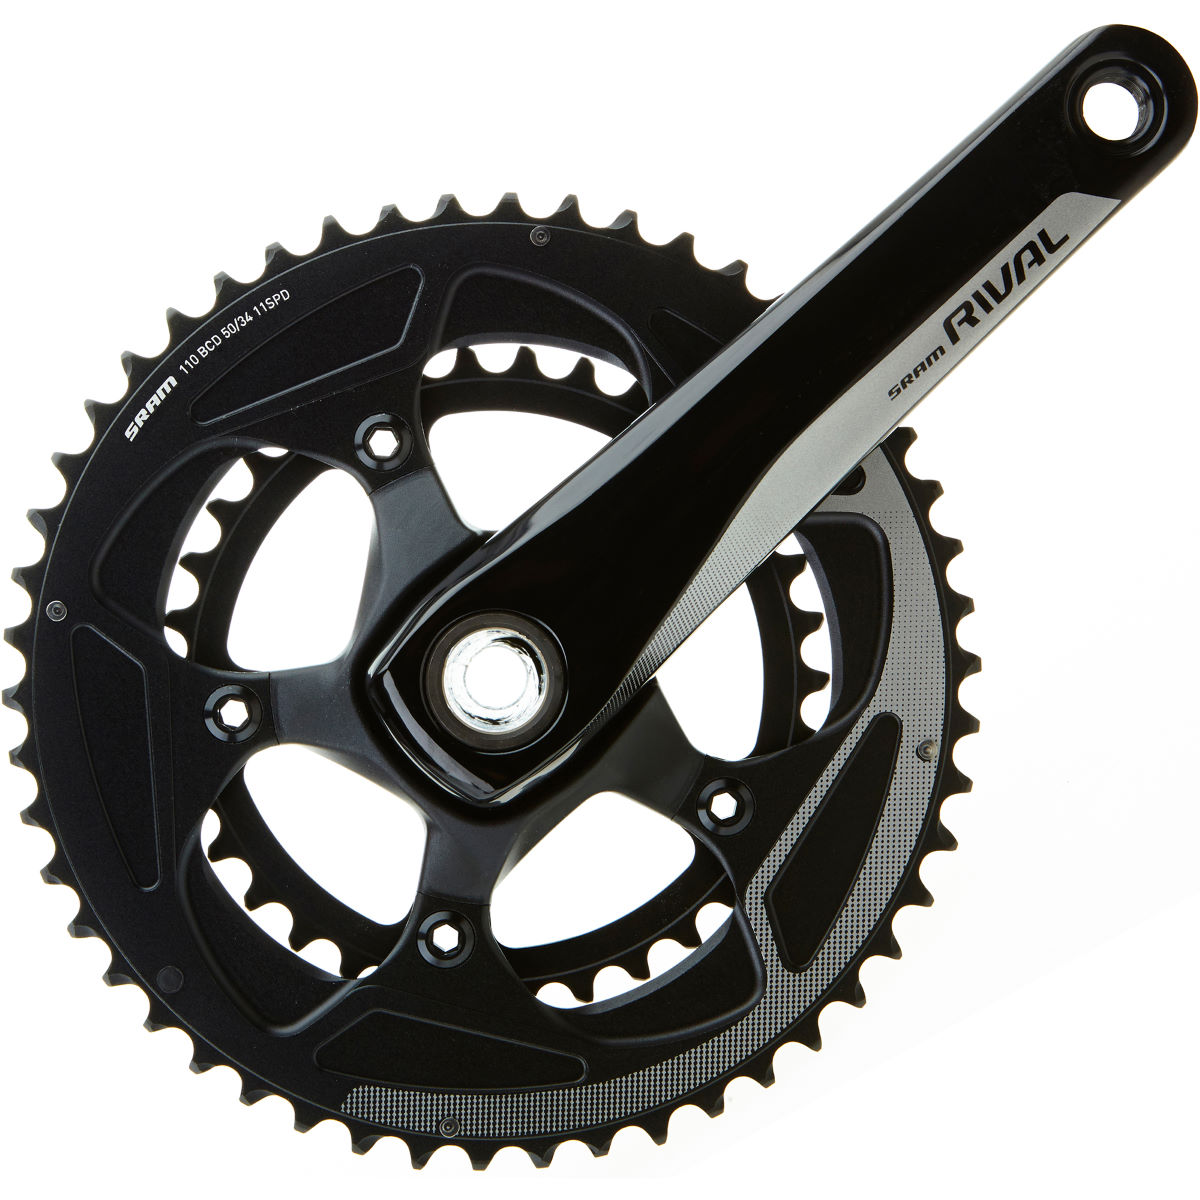 Sram Rival 22 Gxp Compact Chainset (11 Speed) - 52.36t 170mm Black